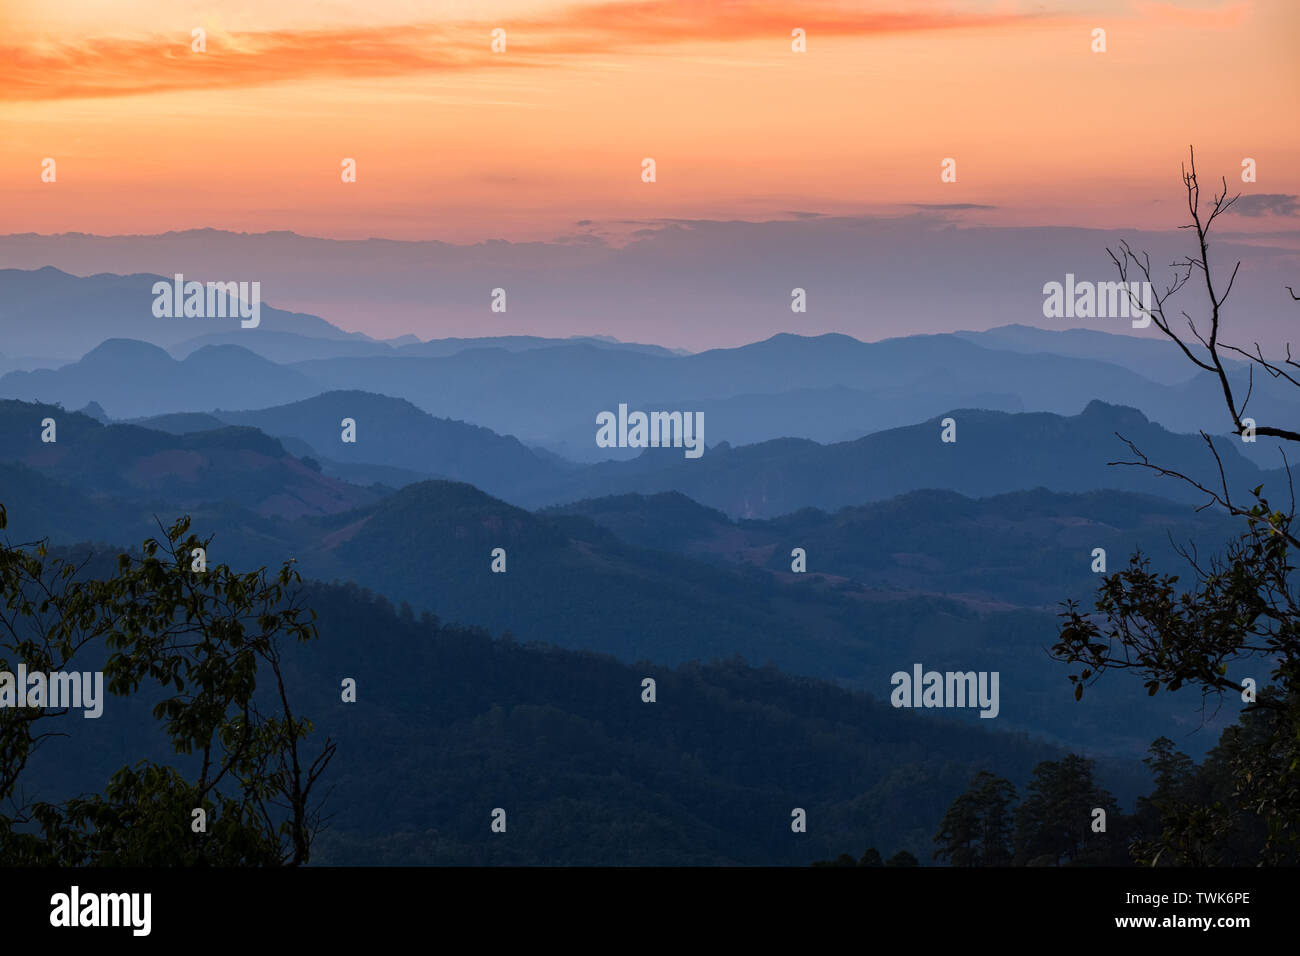 Layer mountain colorful at sunset,doi kiew lom,mae hong son,thailand - Stock Image